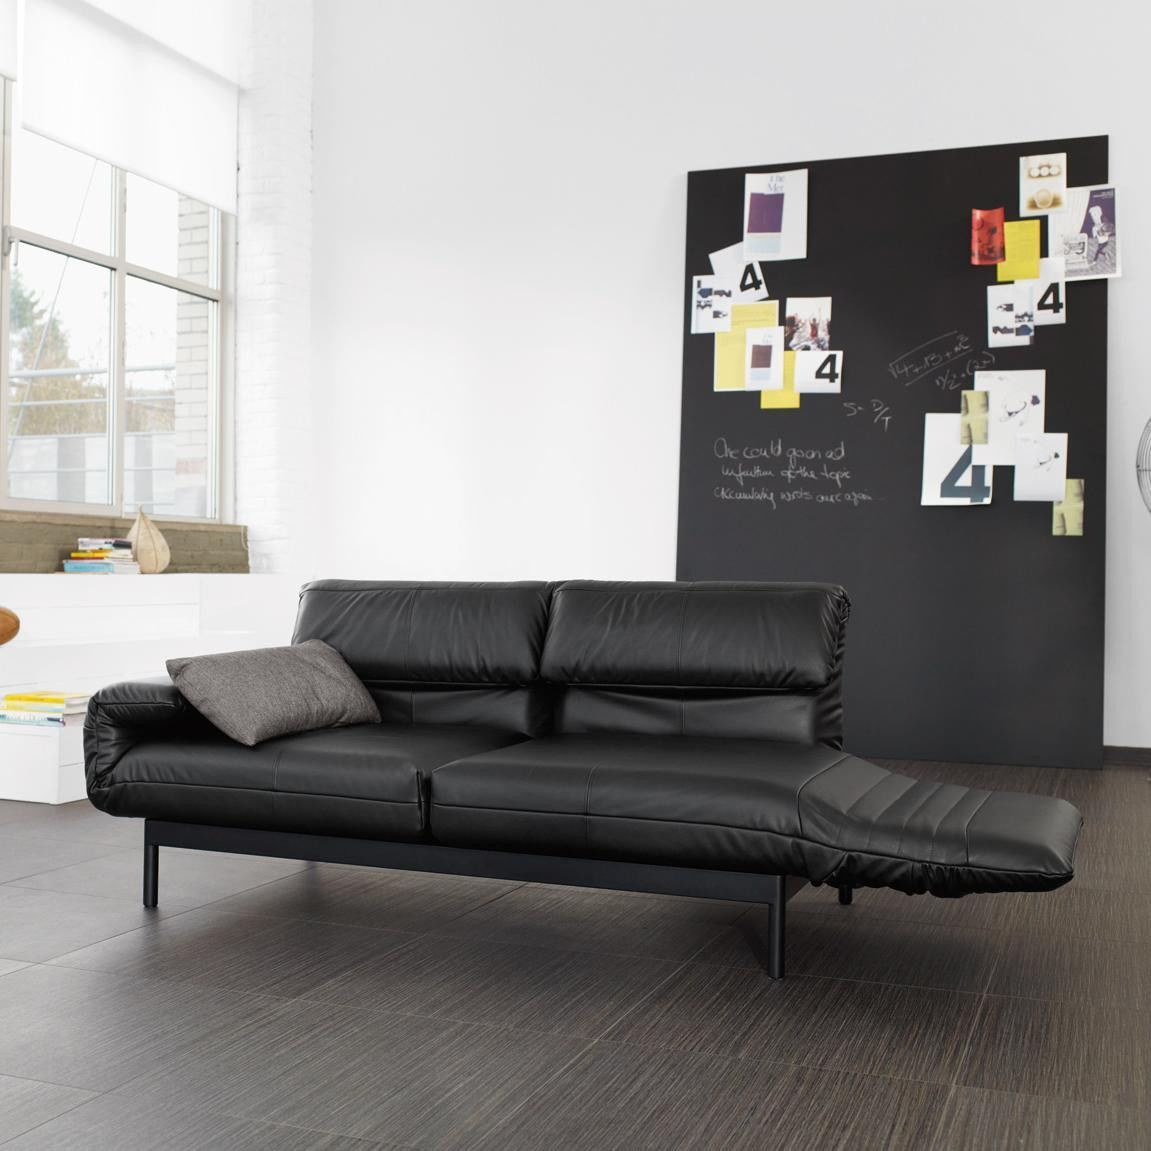 rolf benz 380 plura 3 ziter sofa rolf benz. Black Bedroom Furniture Sets. Home Design Ideas